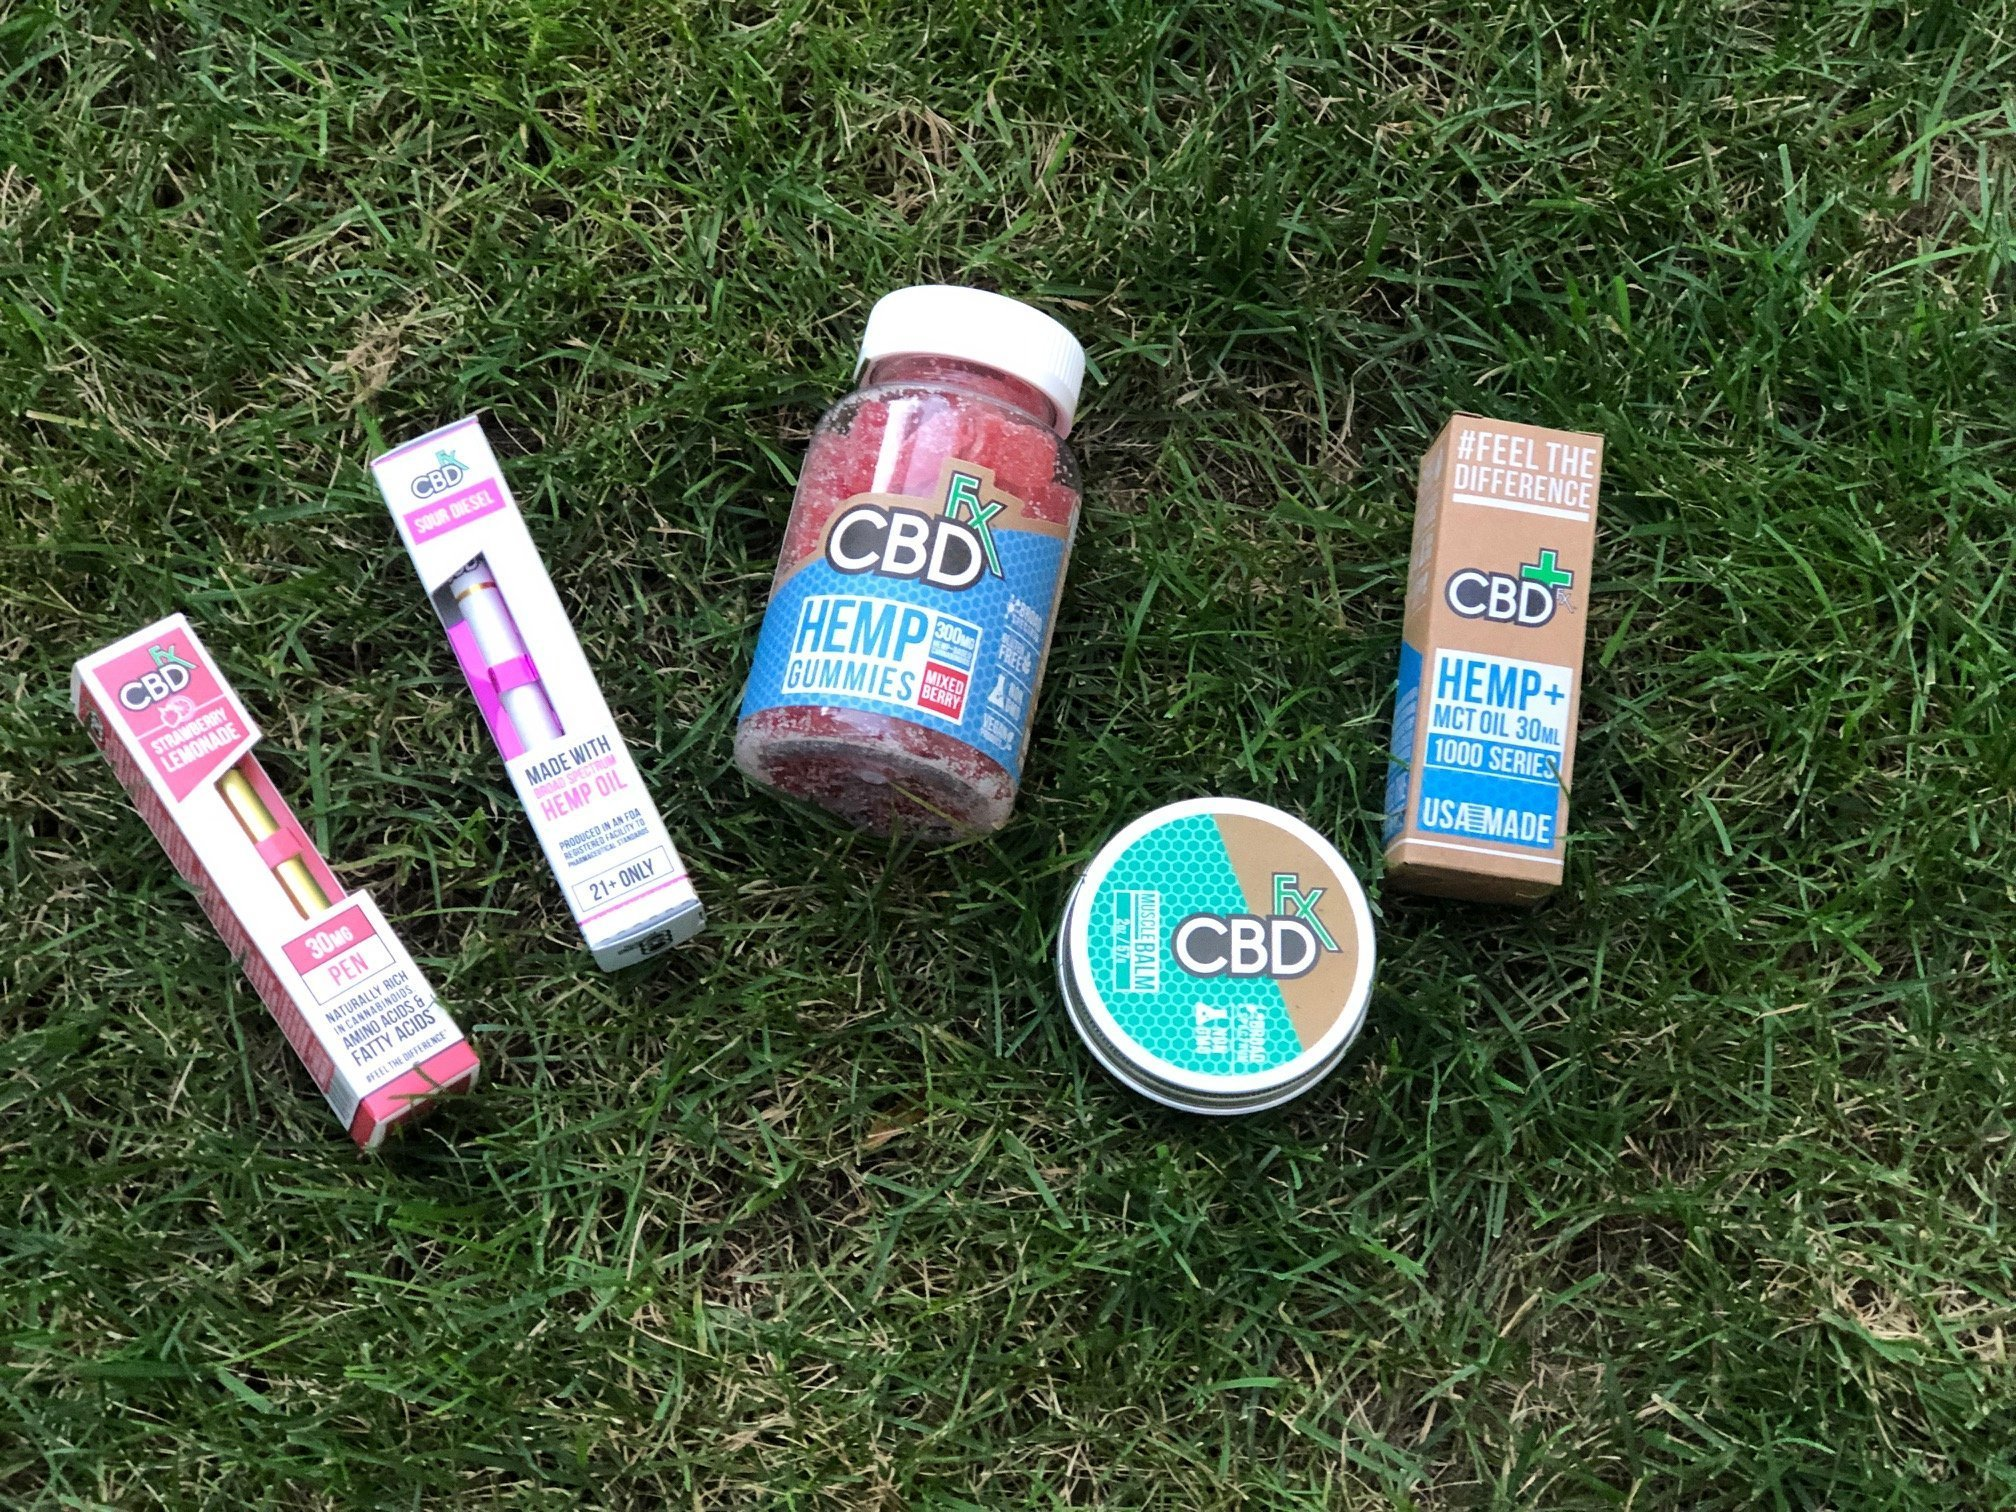 cbdfx-products-outdoor-grass-all